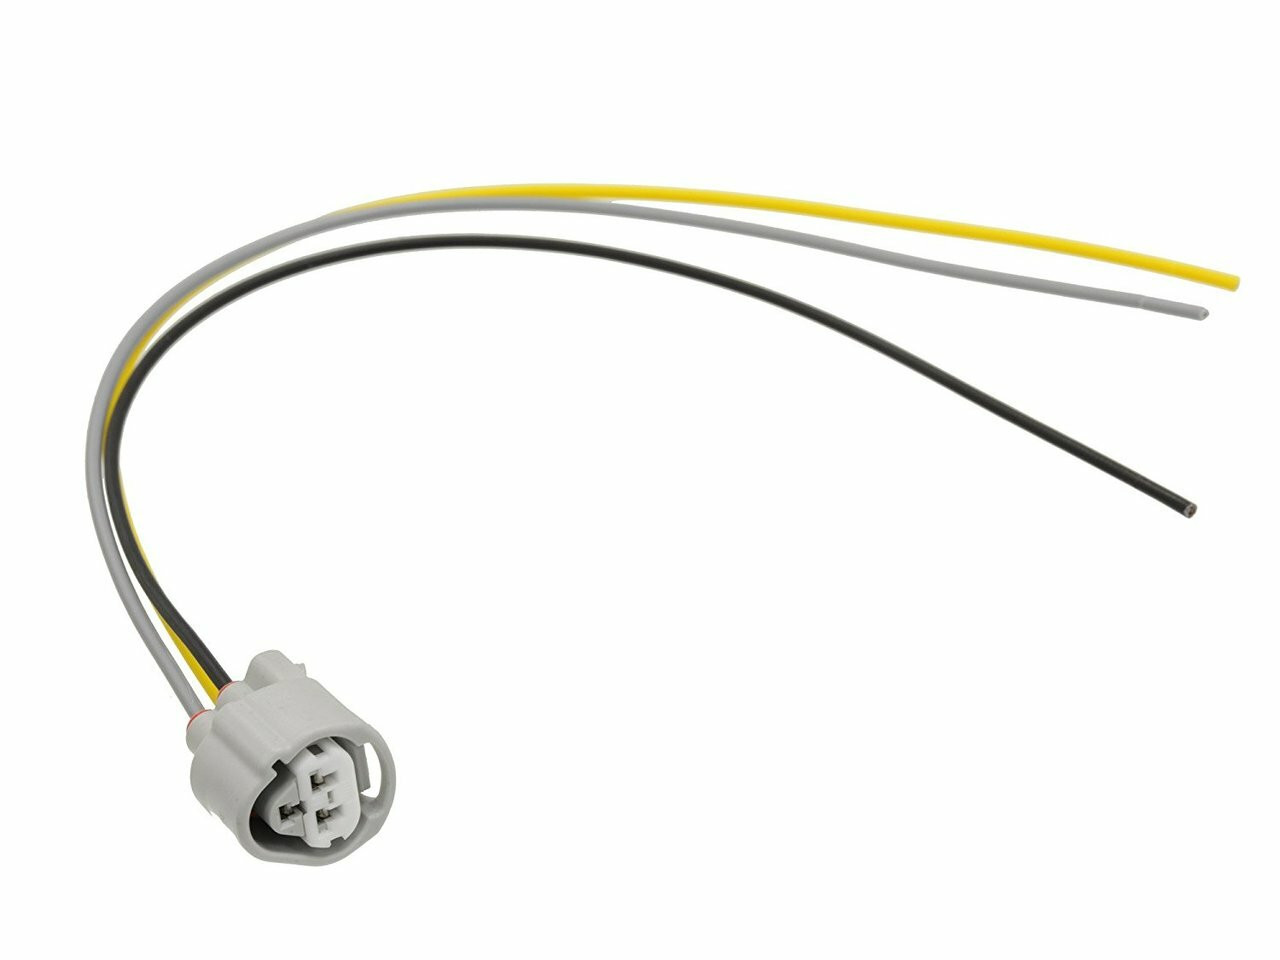 Connector Pigtail Wire Toyota 3 Way Ect Clt Coolant Temp Sensor Wiring 90980 11451